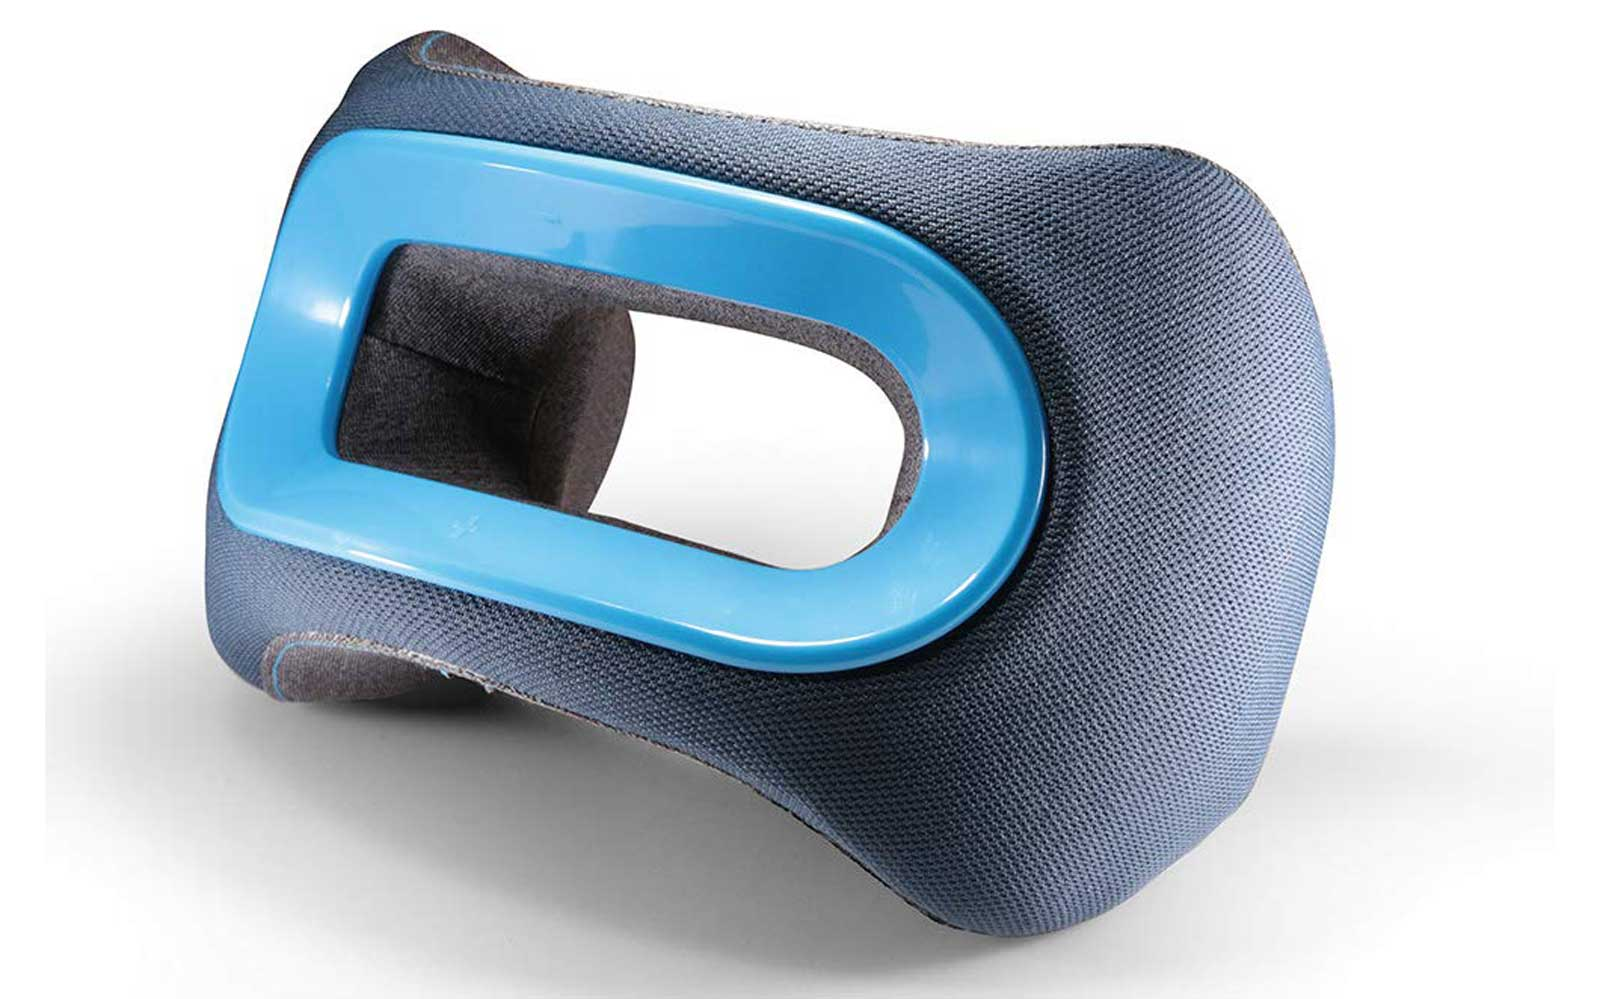 Blue Ergonomic Travel Pillow